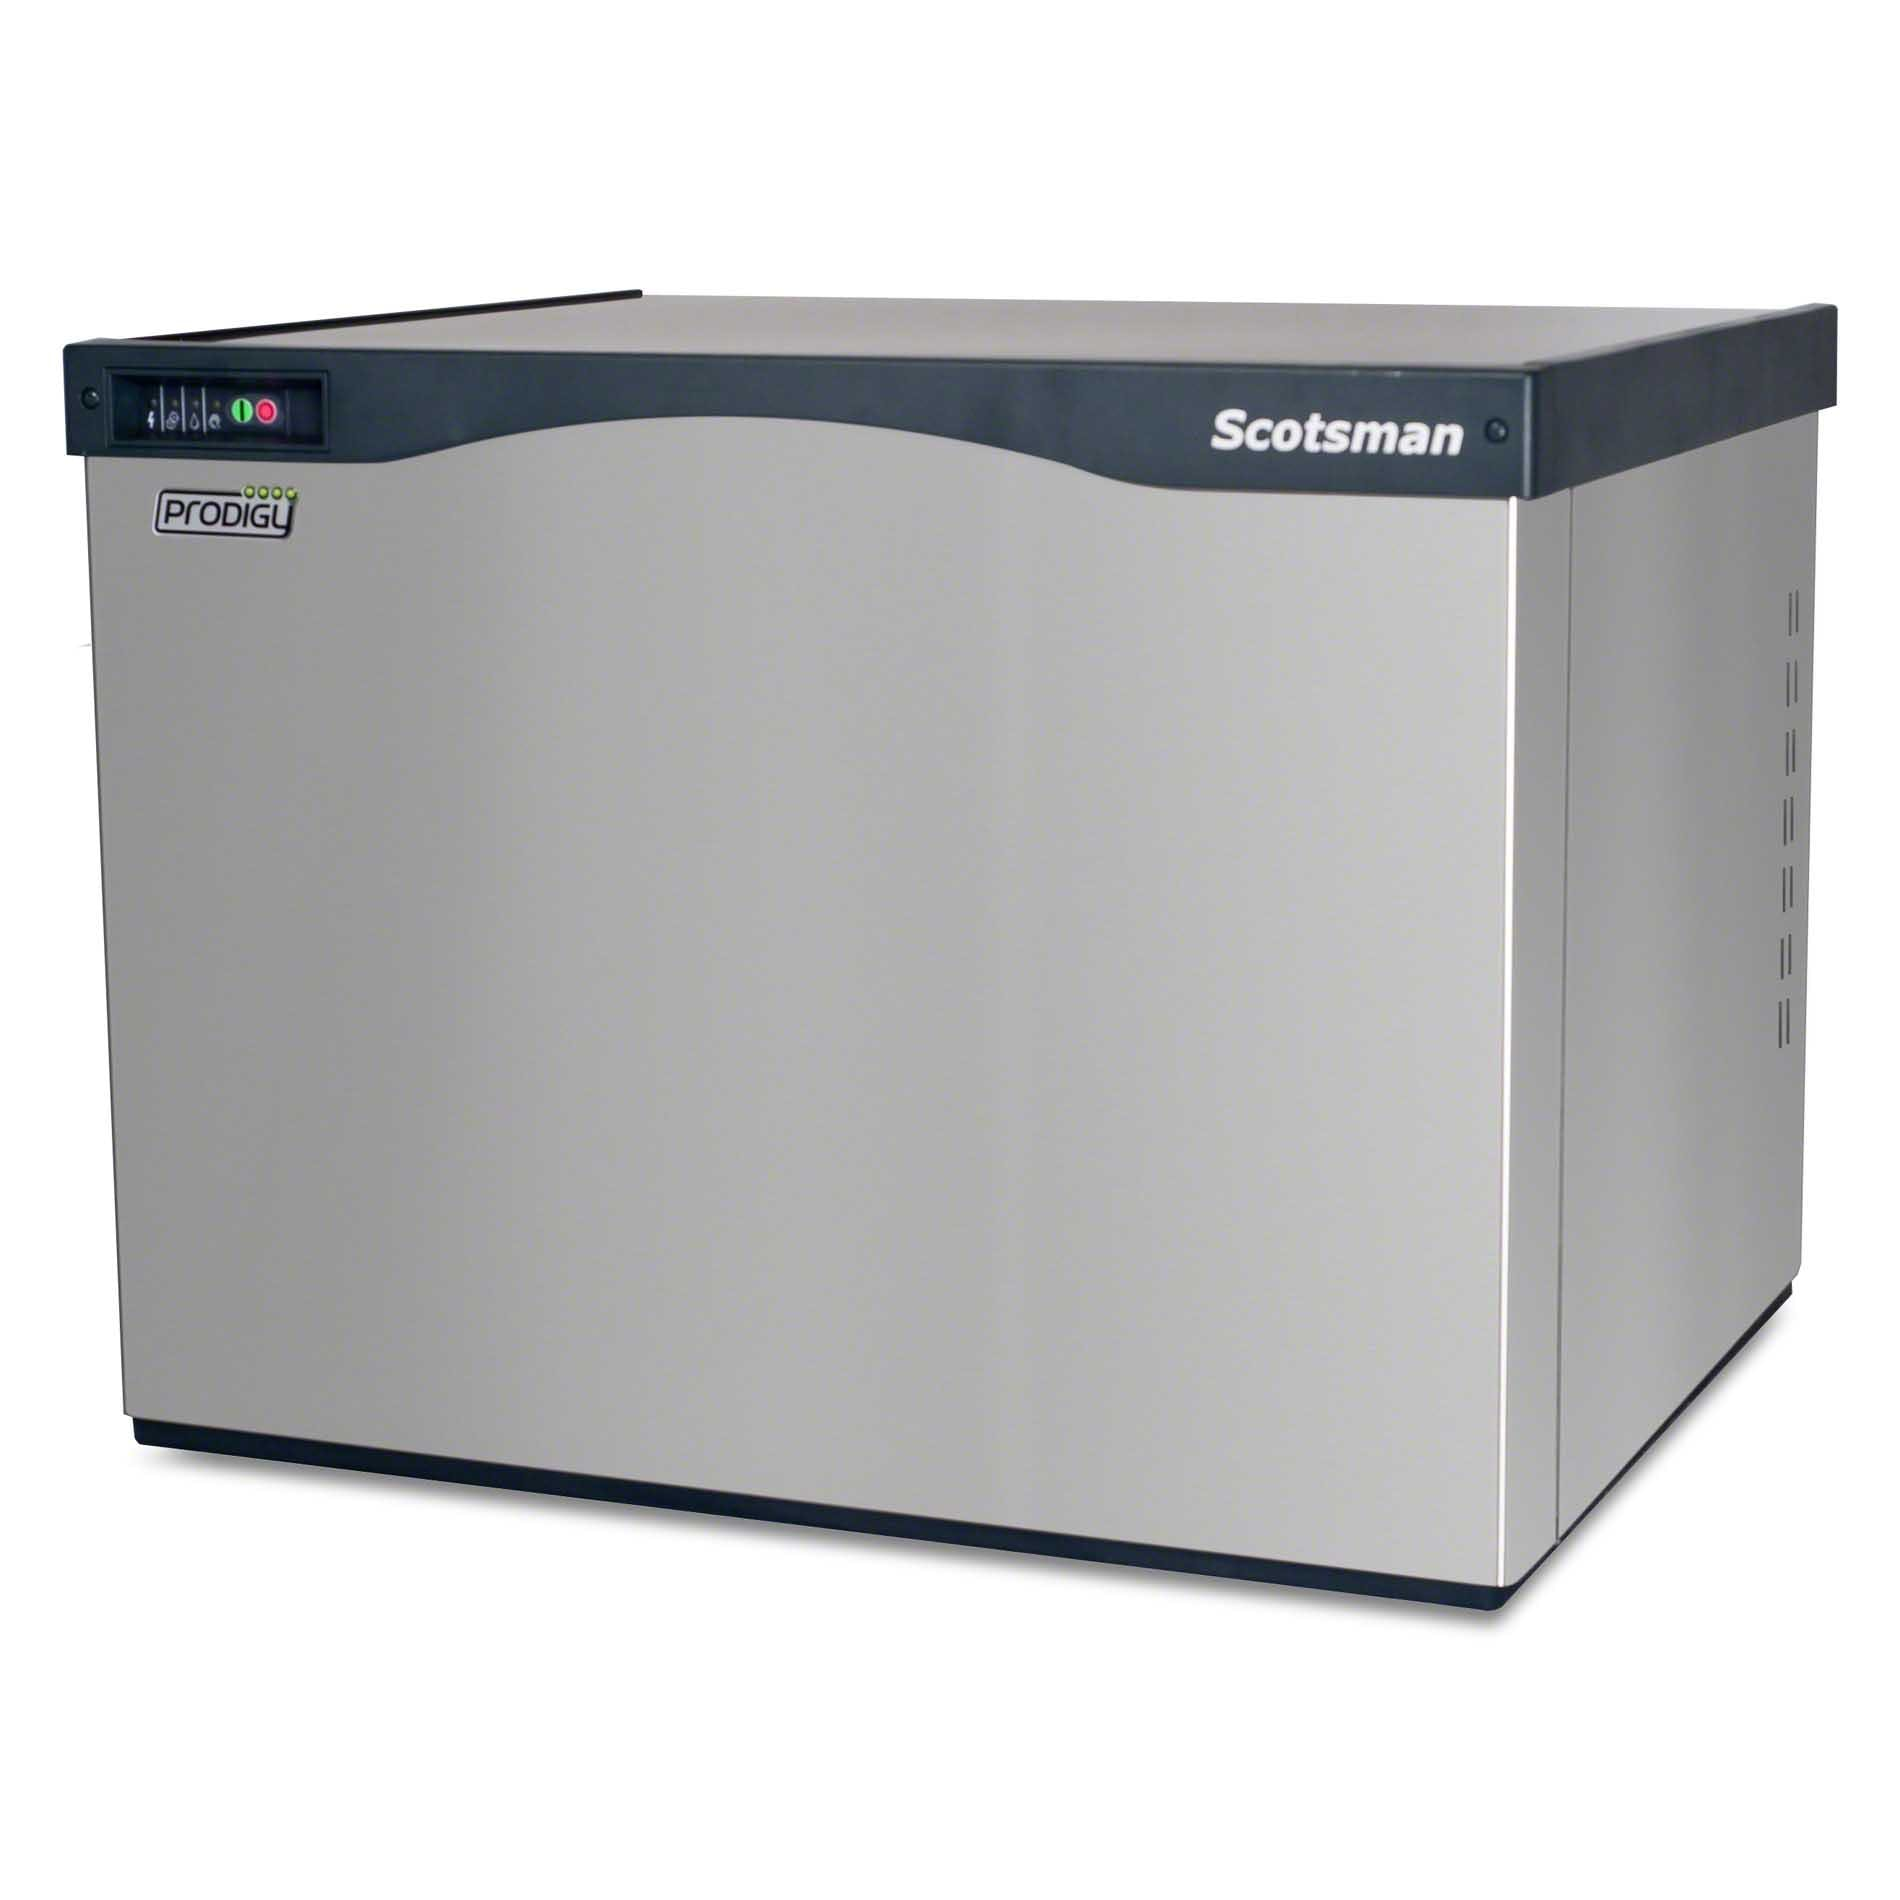 Scotsman - C0630SR-32A 684 lb Half Size Cube Ice Machine - Prodigy Series - sold by Food Service Warehouse